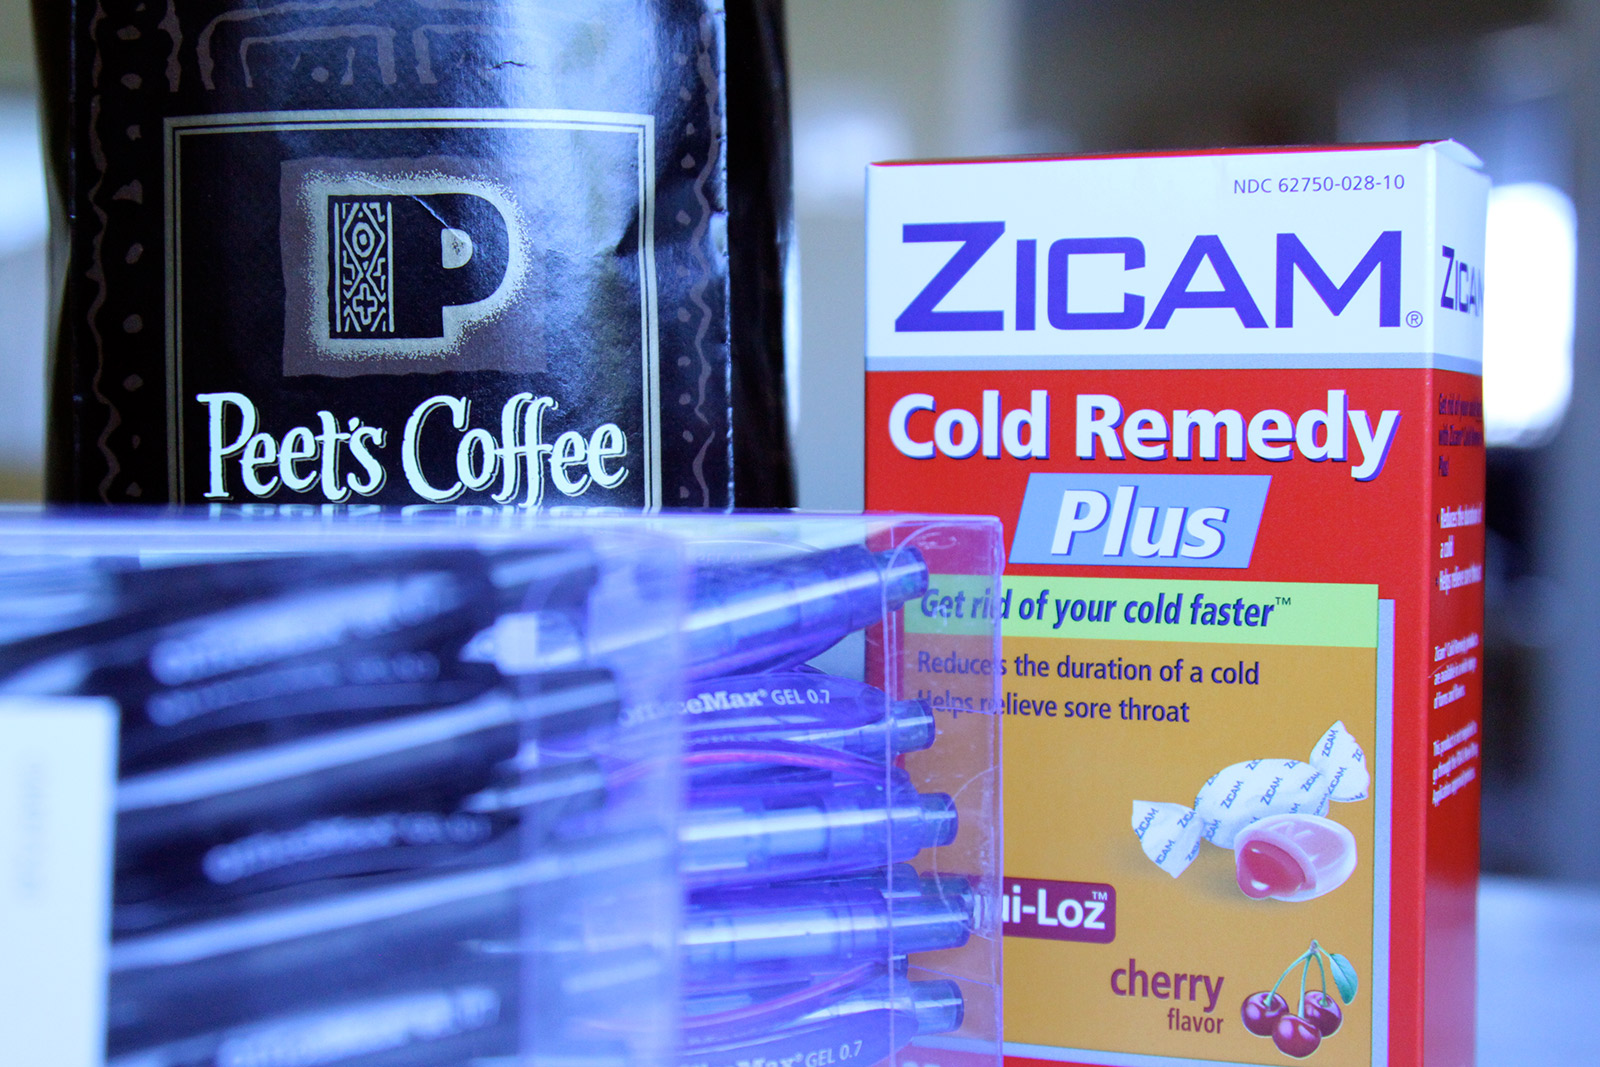 Image shows a bag of coffee, cold medicine, and pens